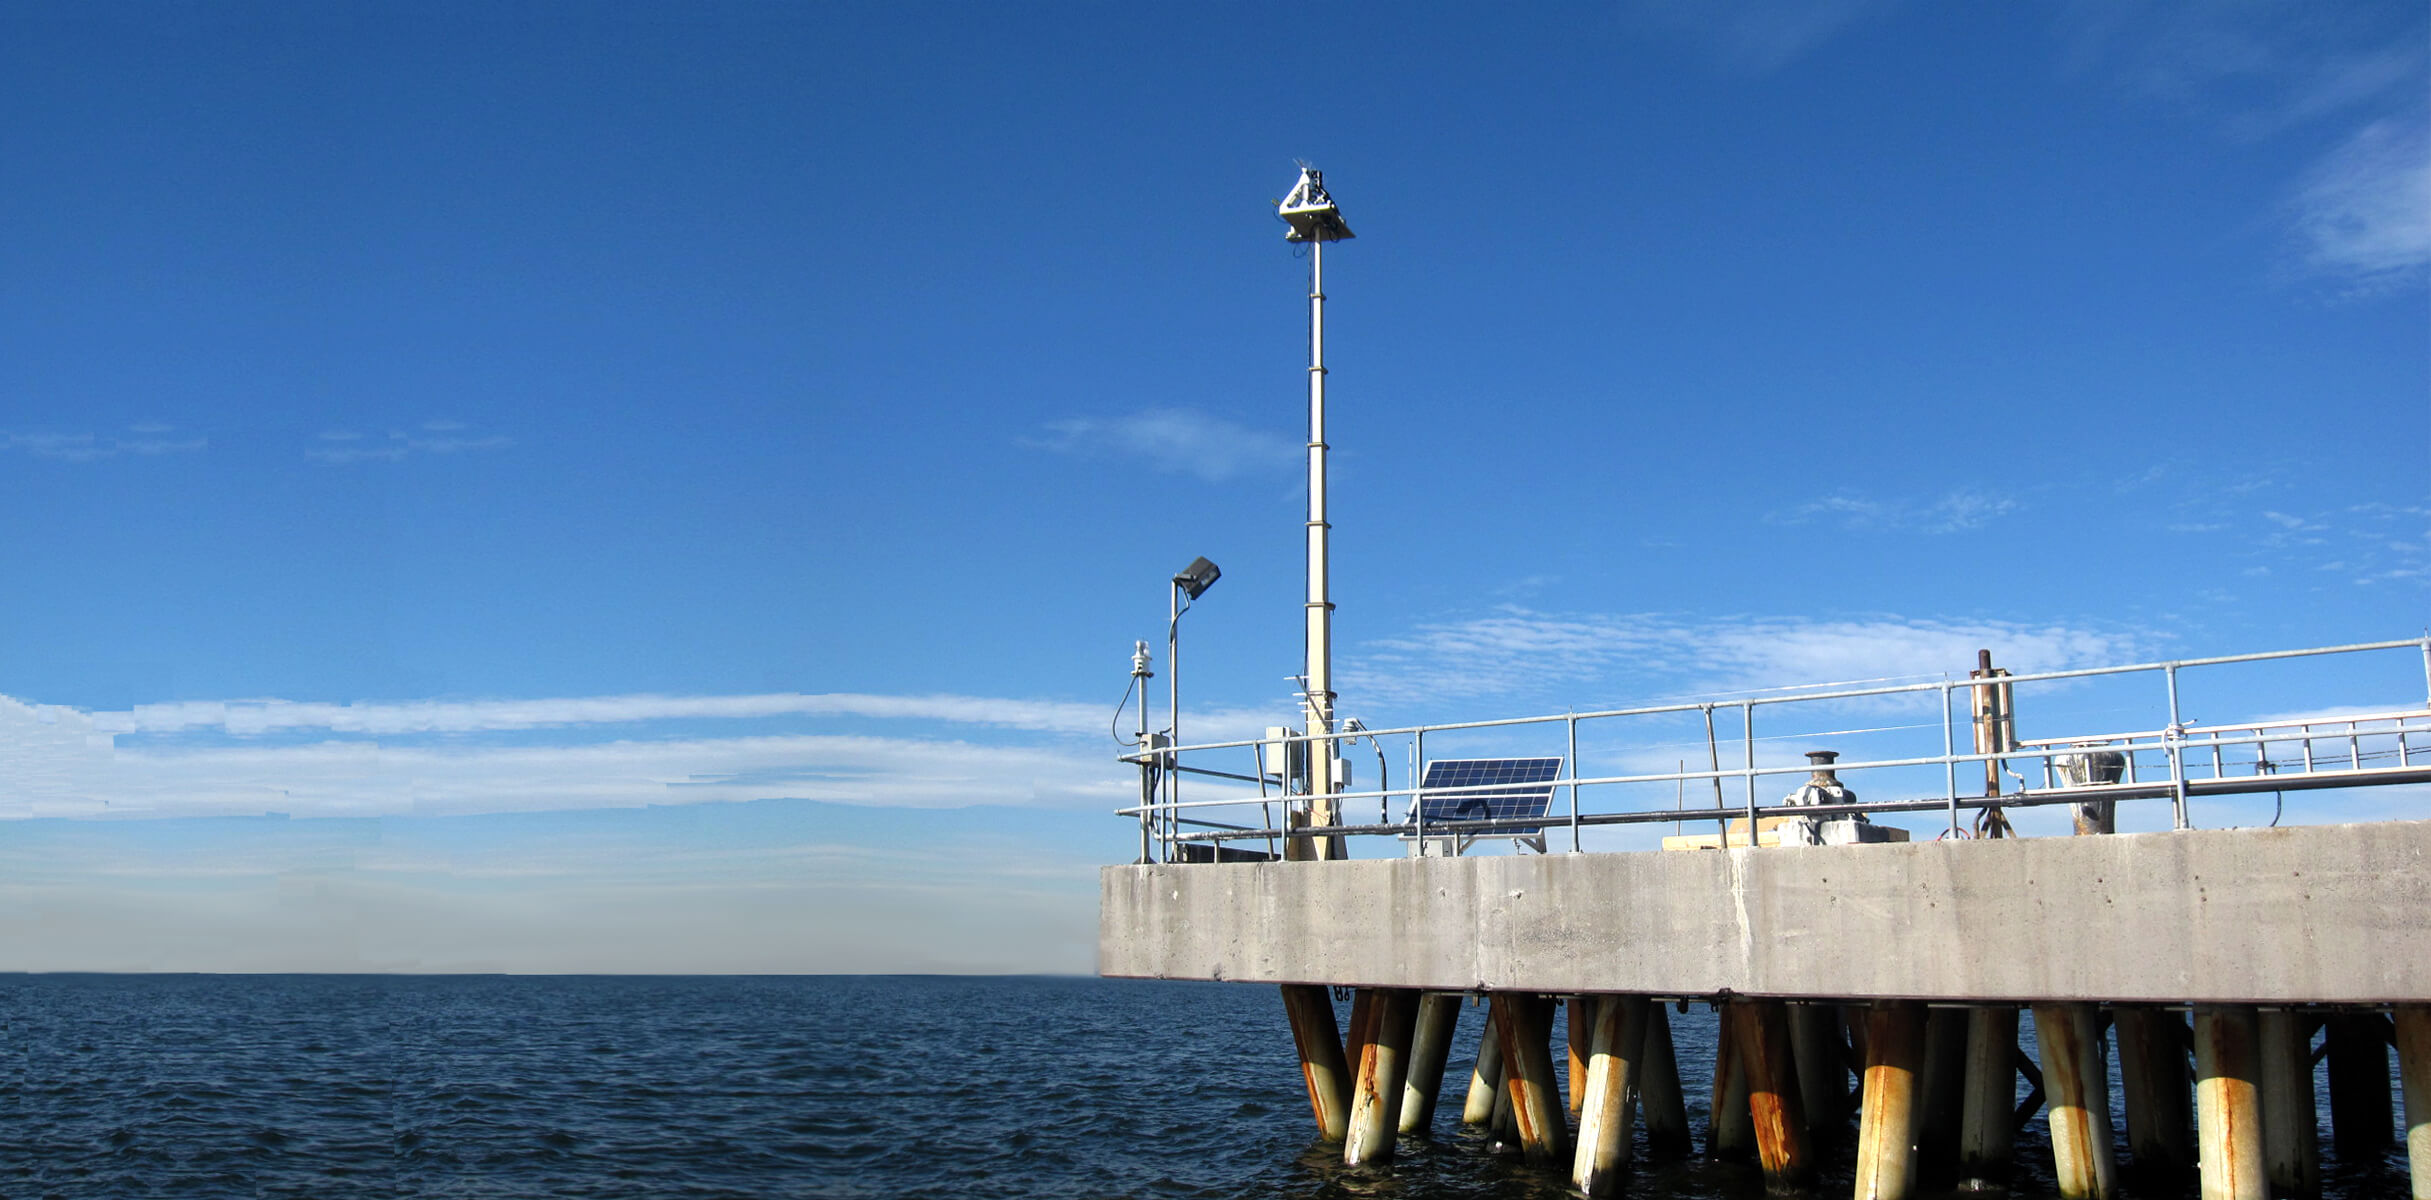 Slider FM30-350 Mast on Power Plant Pier Long Island Sound